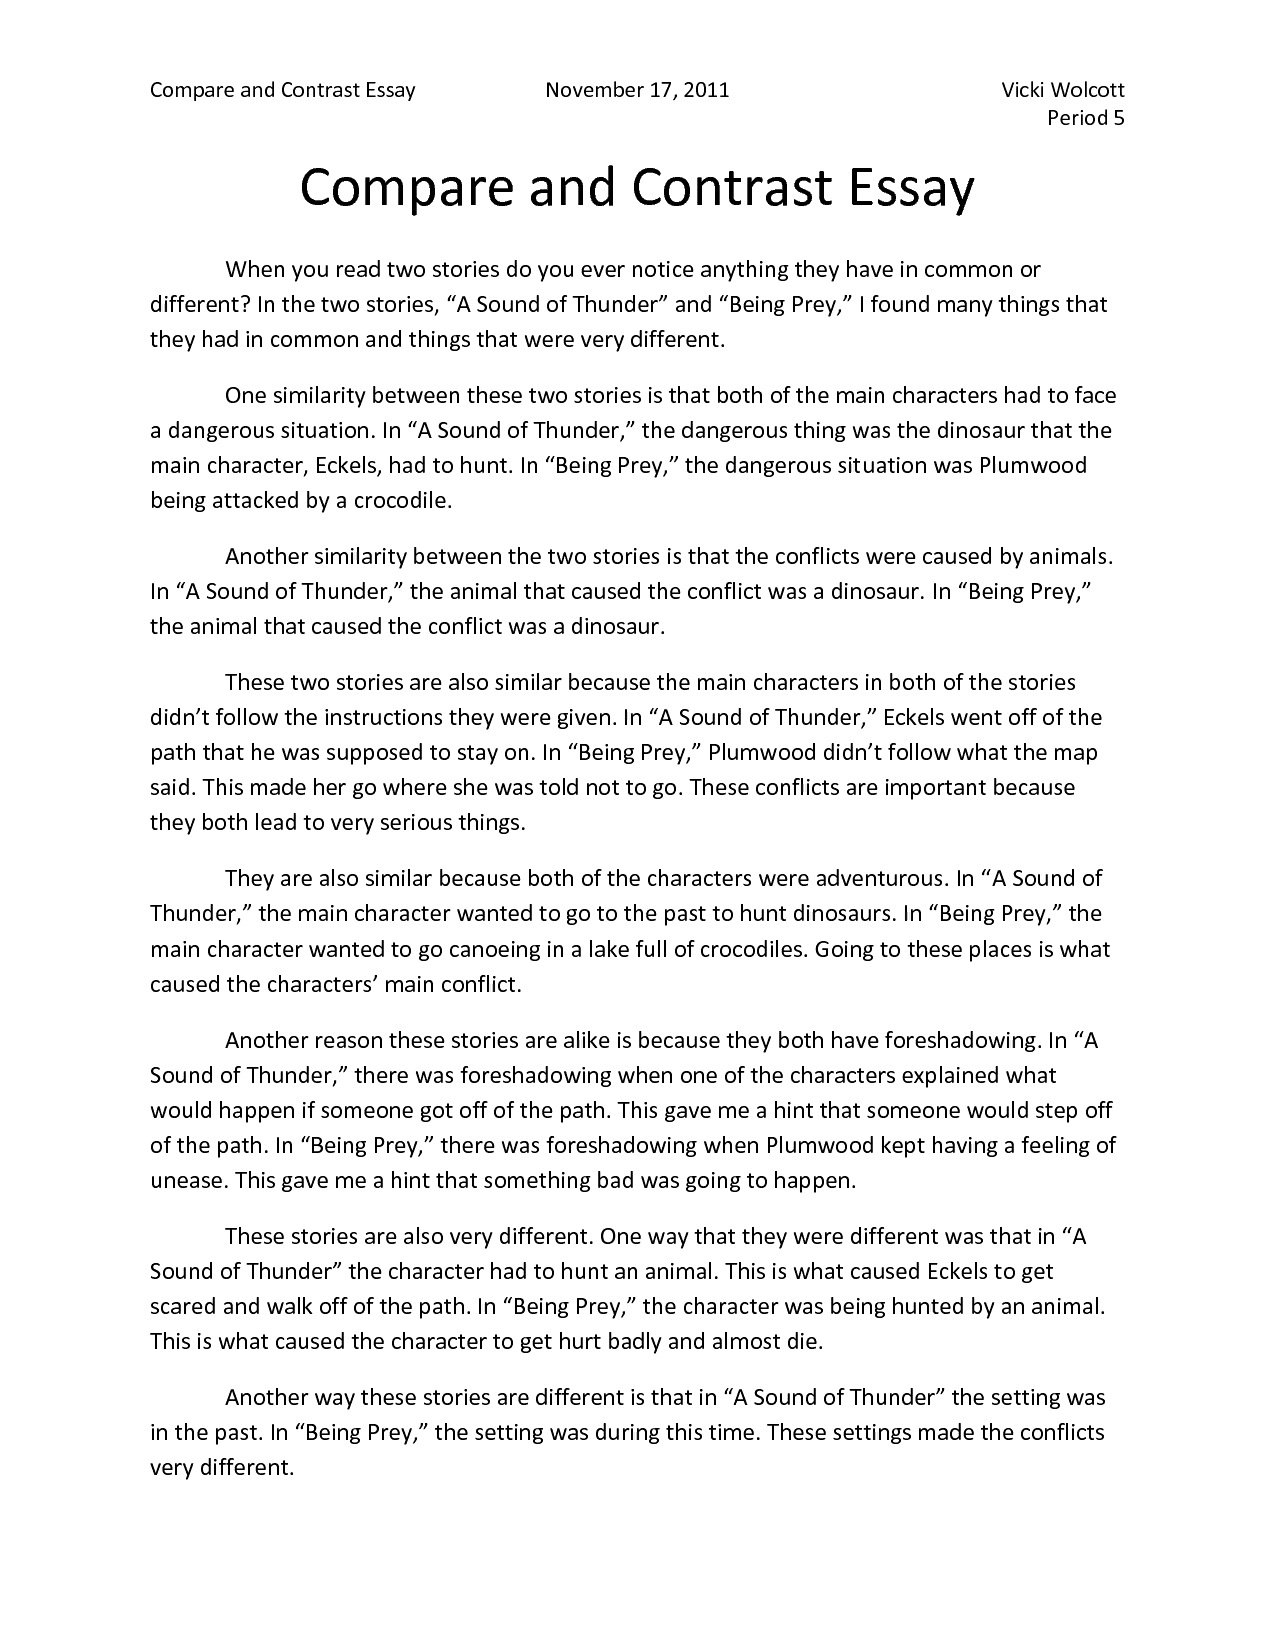 comparison essays topics - coles.thecolossus.co